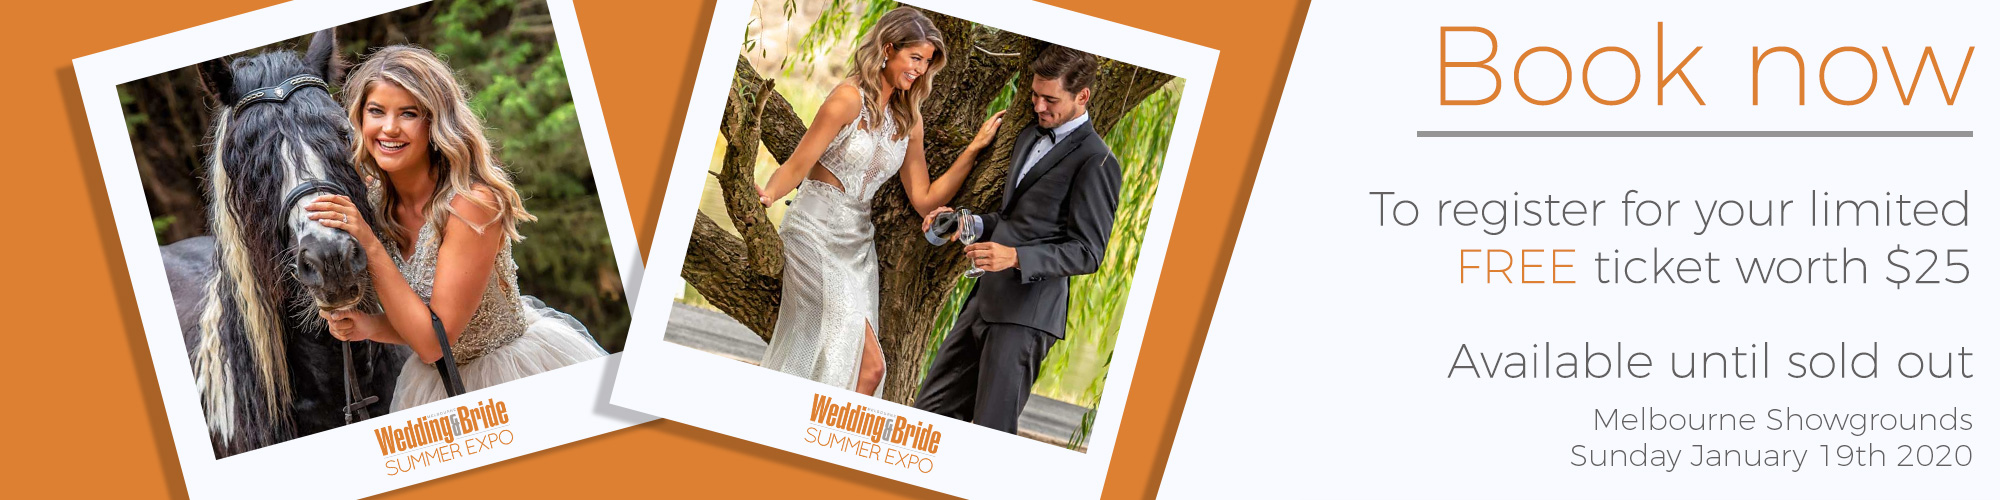 Melbourne Bridal Expos - Wedding and Bride Wedding Expo